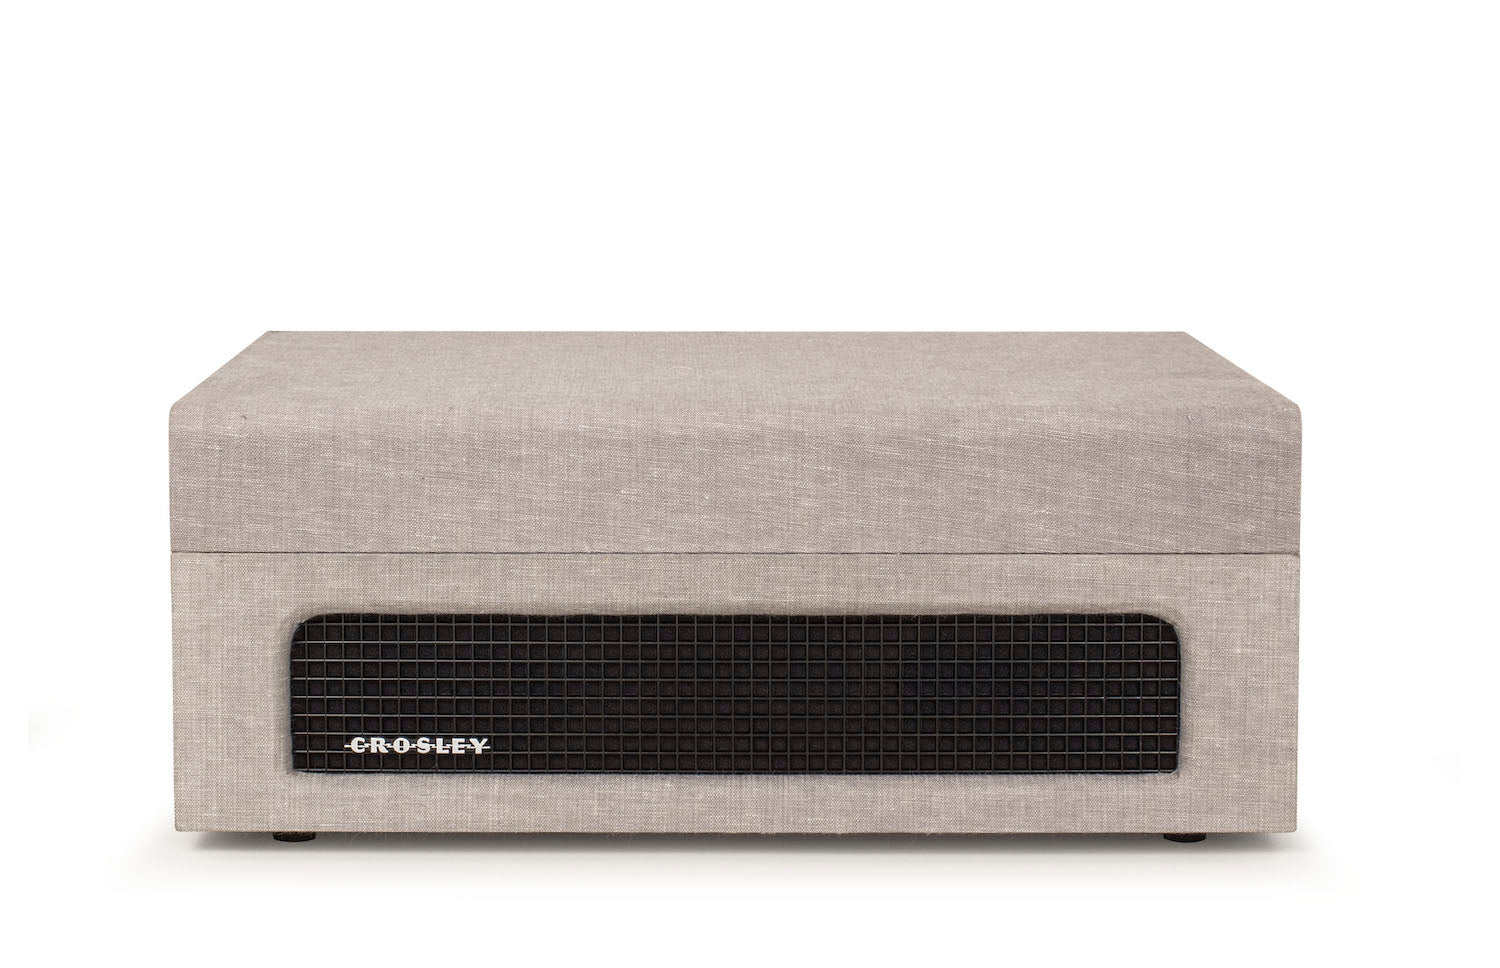 Crosley Vinyl Record Player - Voyager Grey